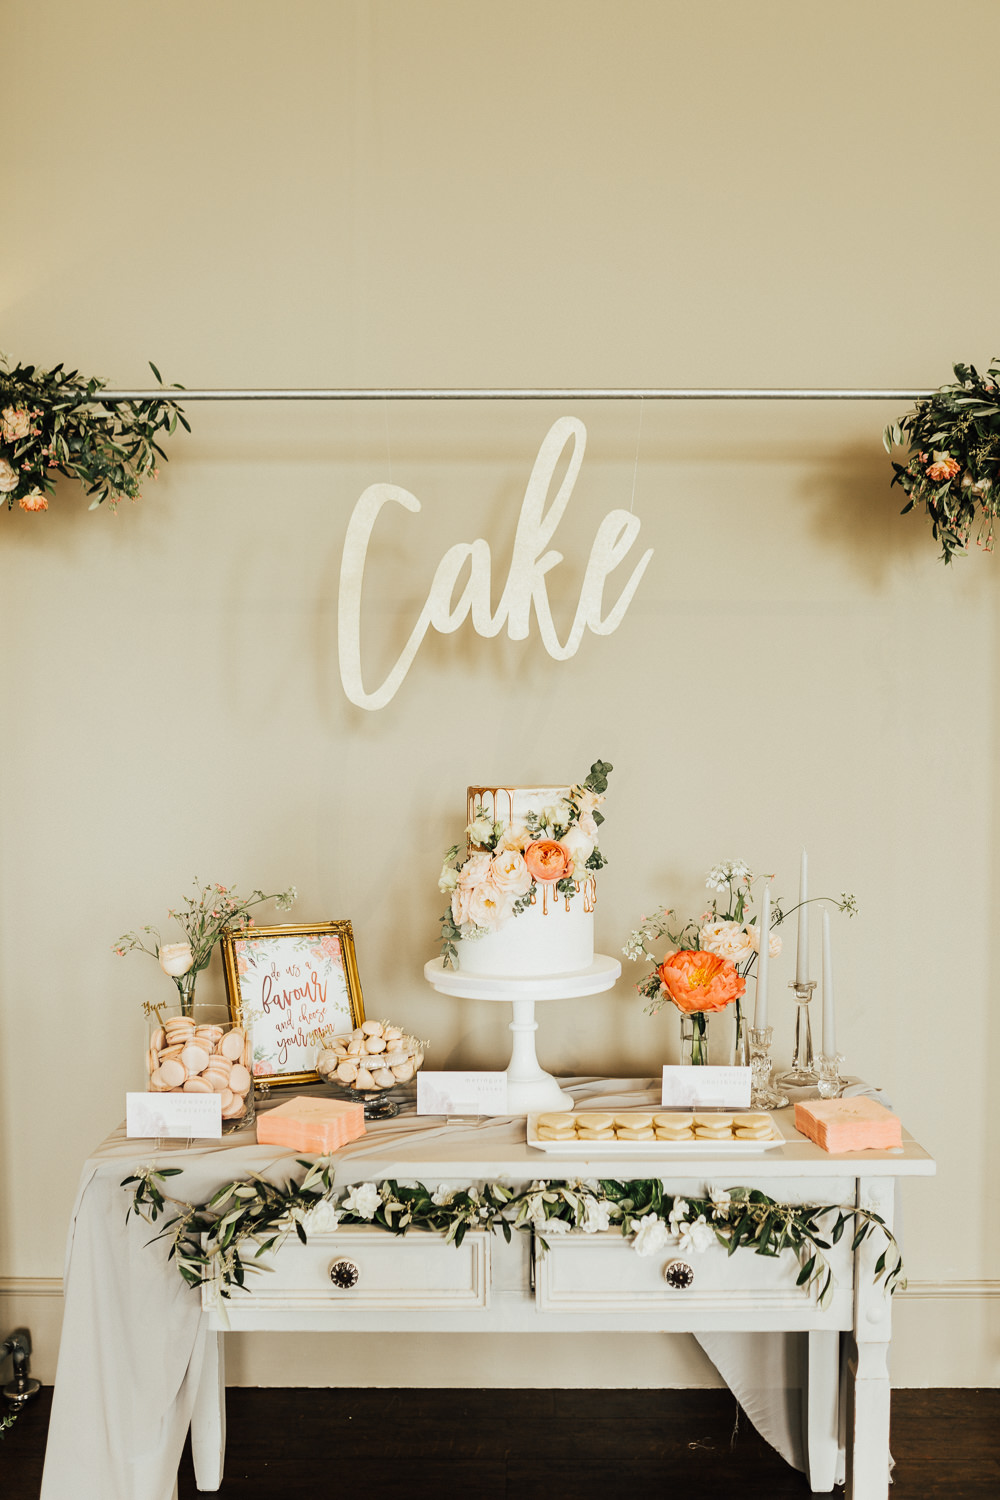 Cake Table Desserts Furniture Stubton Hall Wedding Darina Stoda Photography